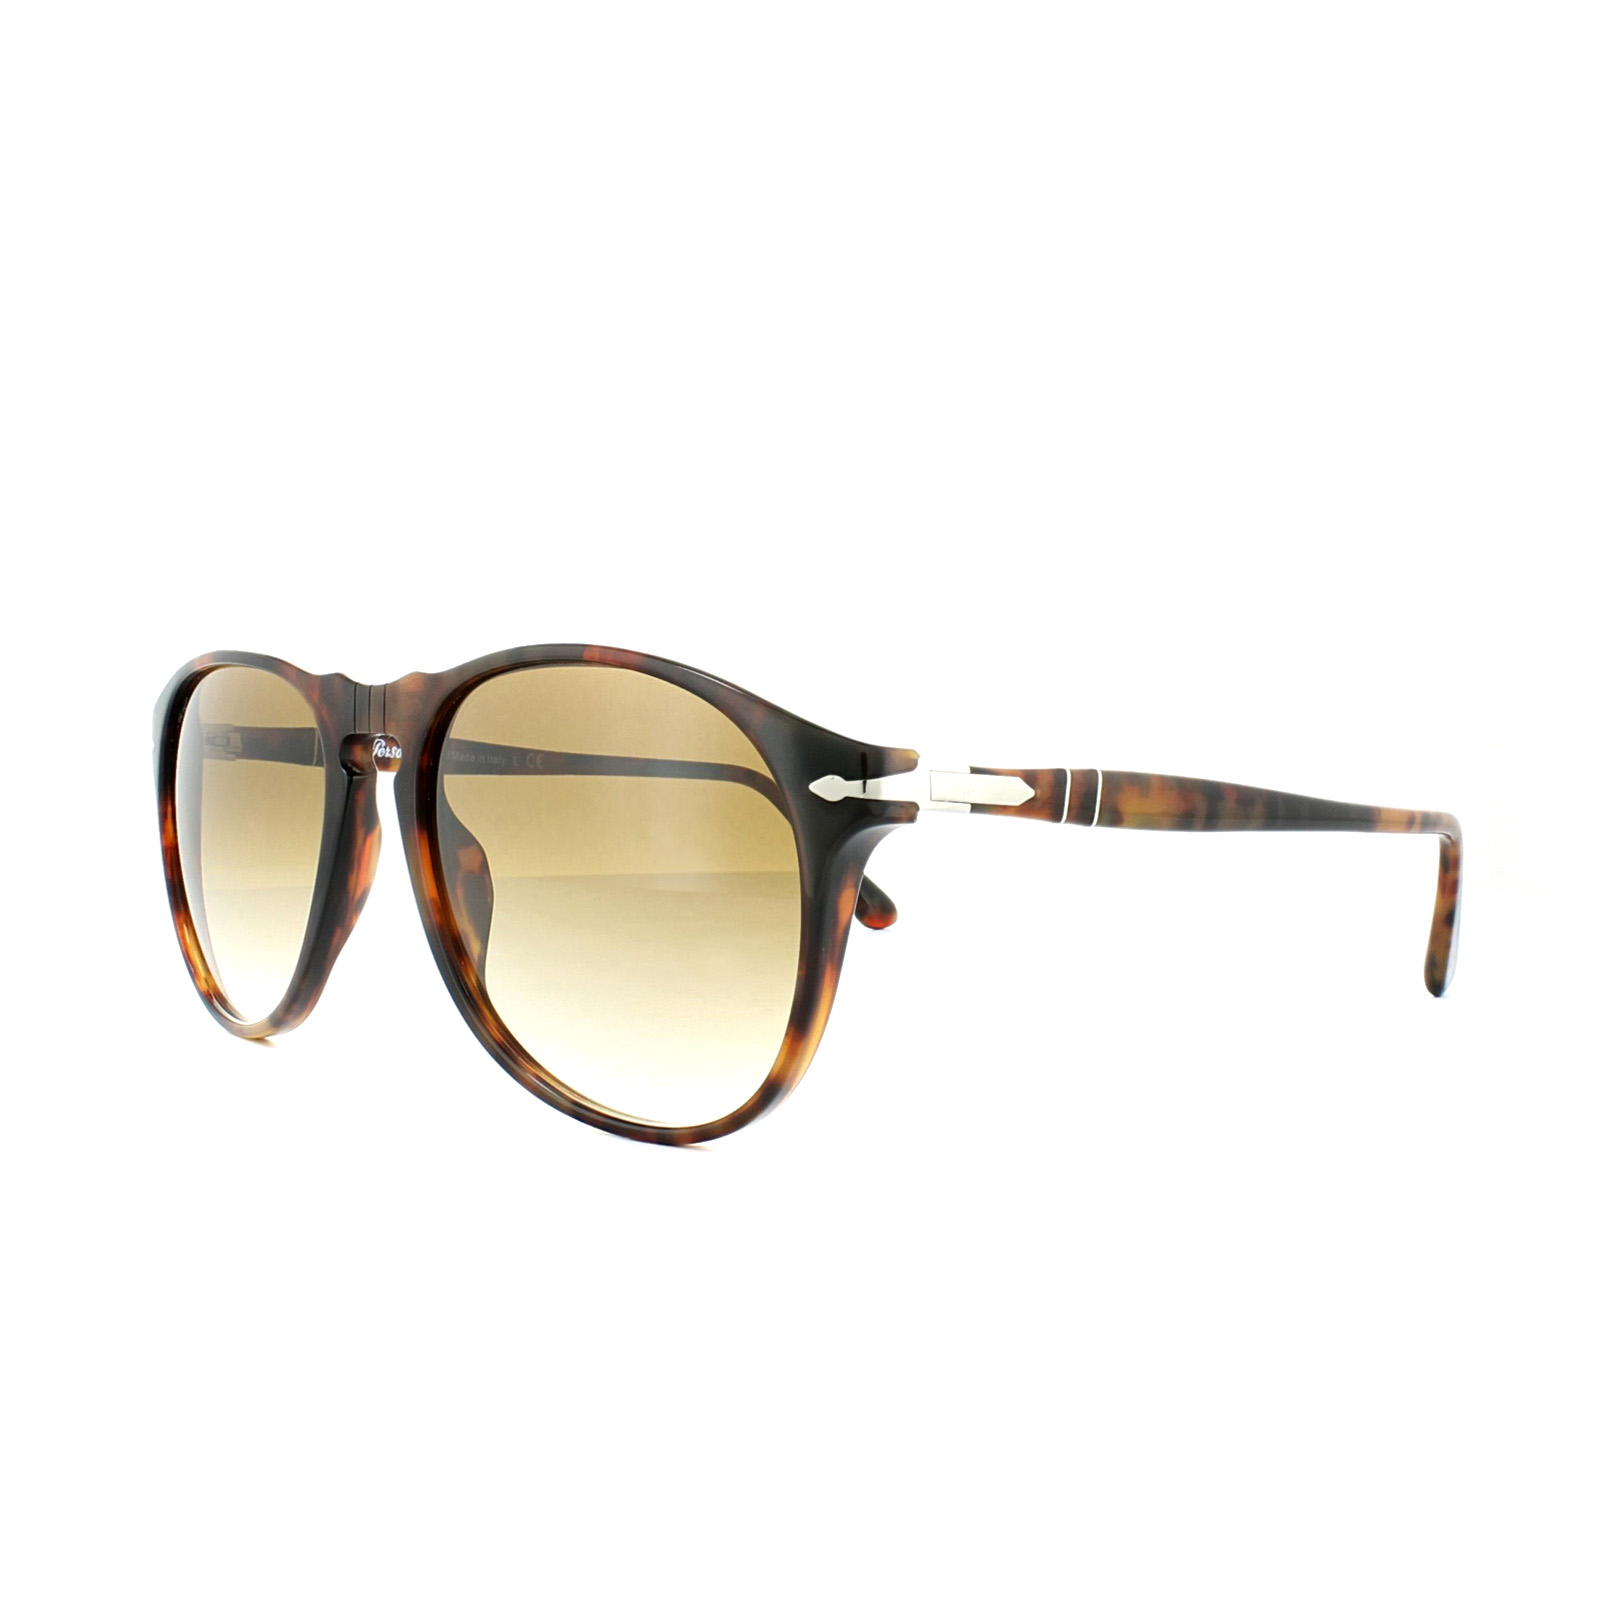 ceb303b9ad Sentinel Thumbnail 1. Sentinel Persol Sunglasses 6649S 108 51 Caffe Brown  Brown Gradient